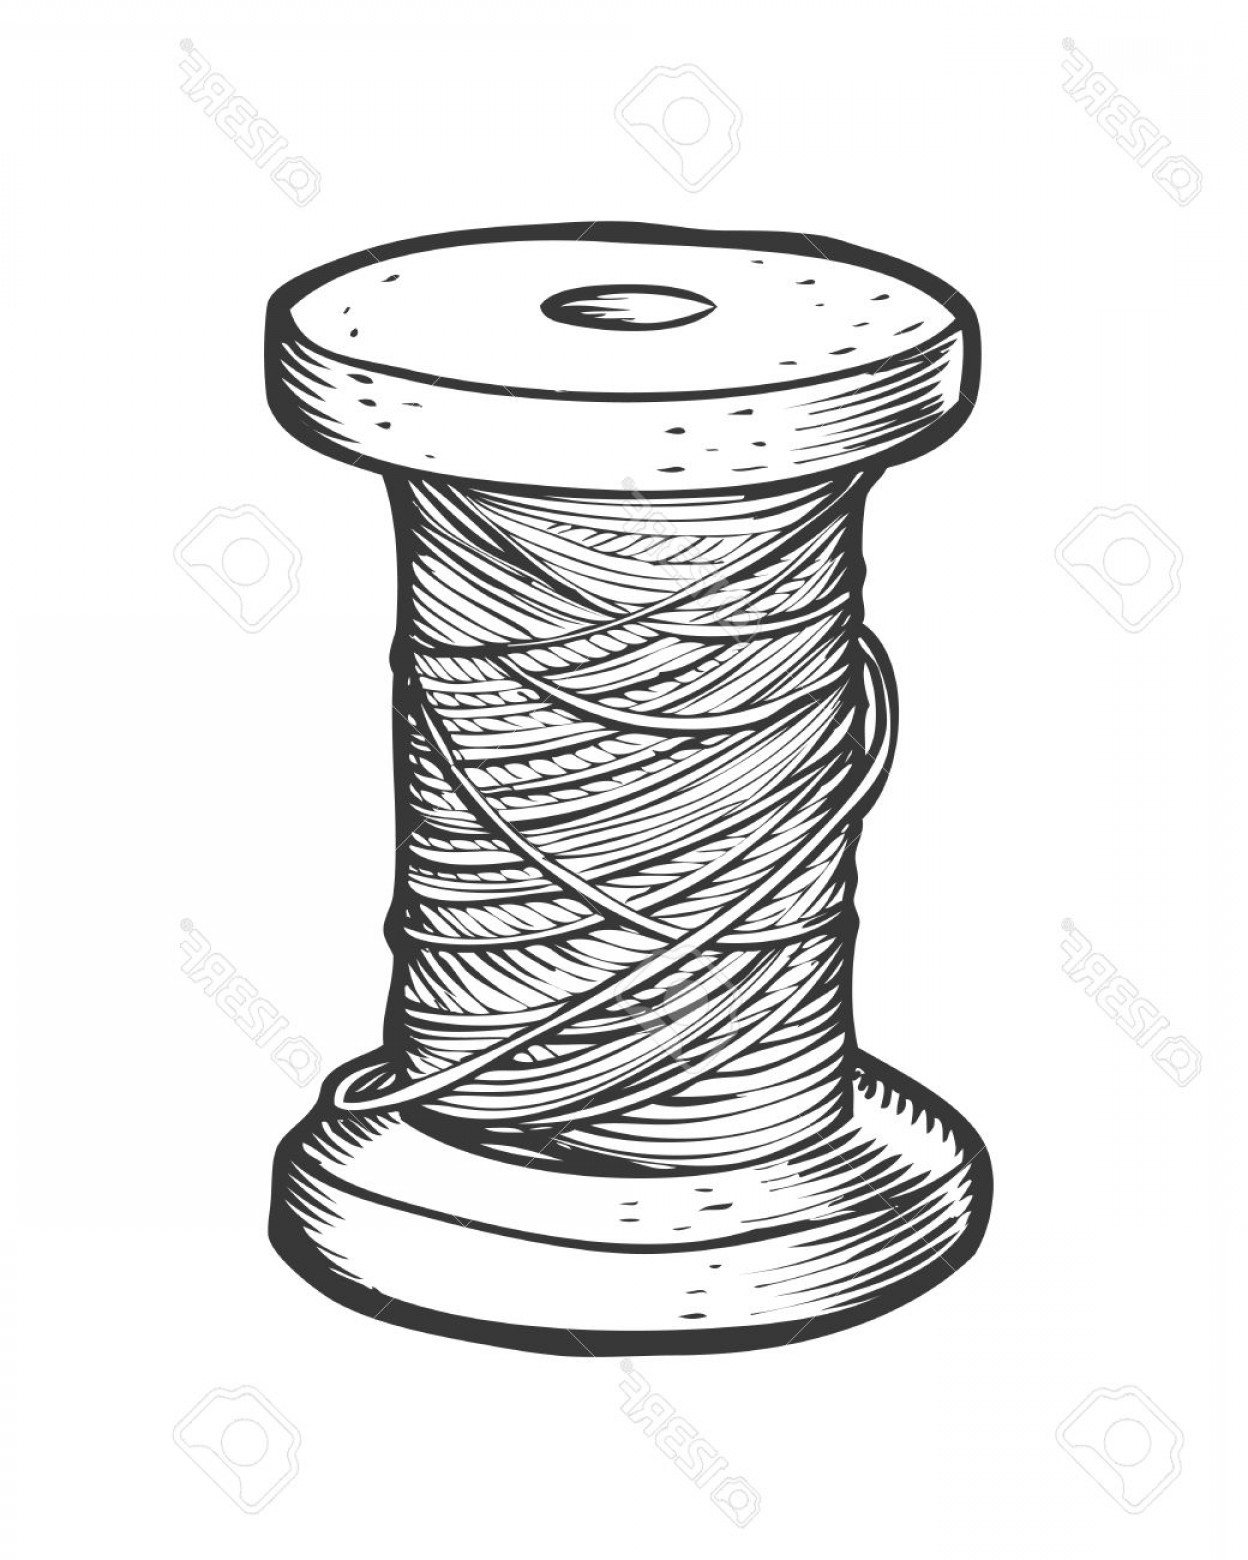 Sewing Spool Vector: Photostock Vector Spool Of Thread Vector Isolated Illustration Hand Drawn Doodle Sketch Sewing Tool